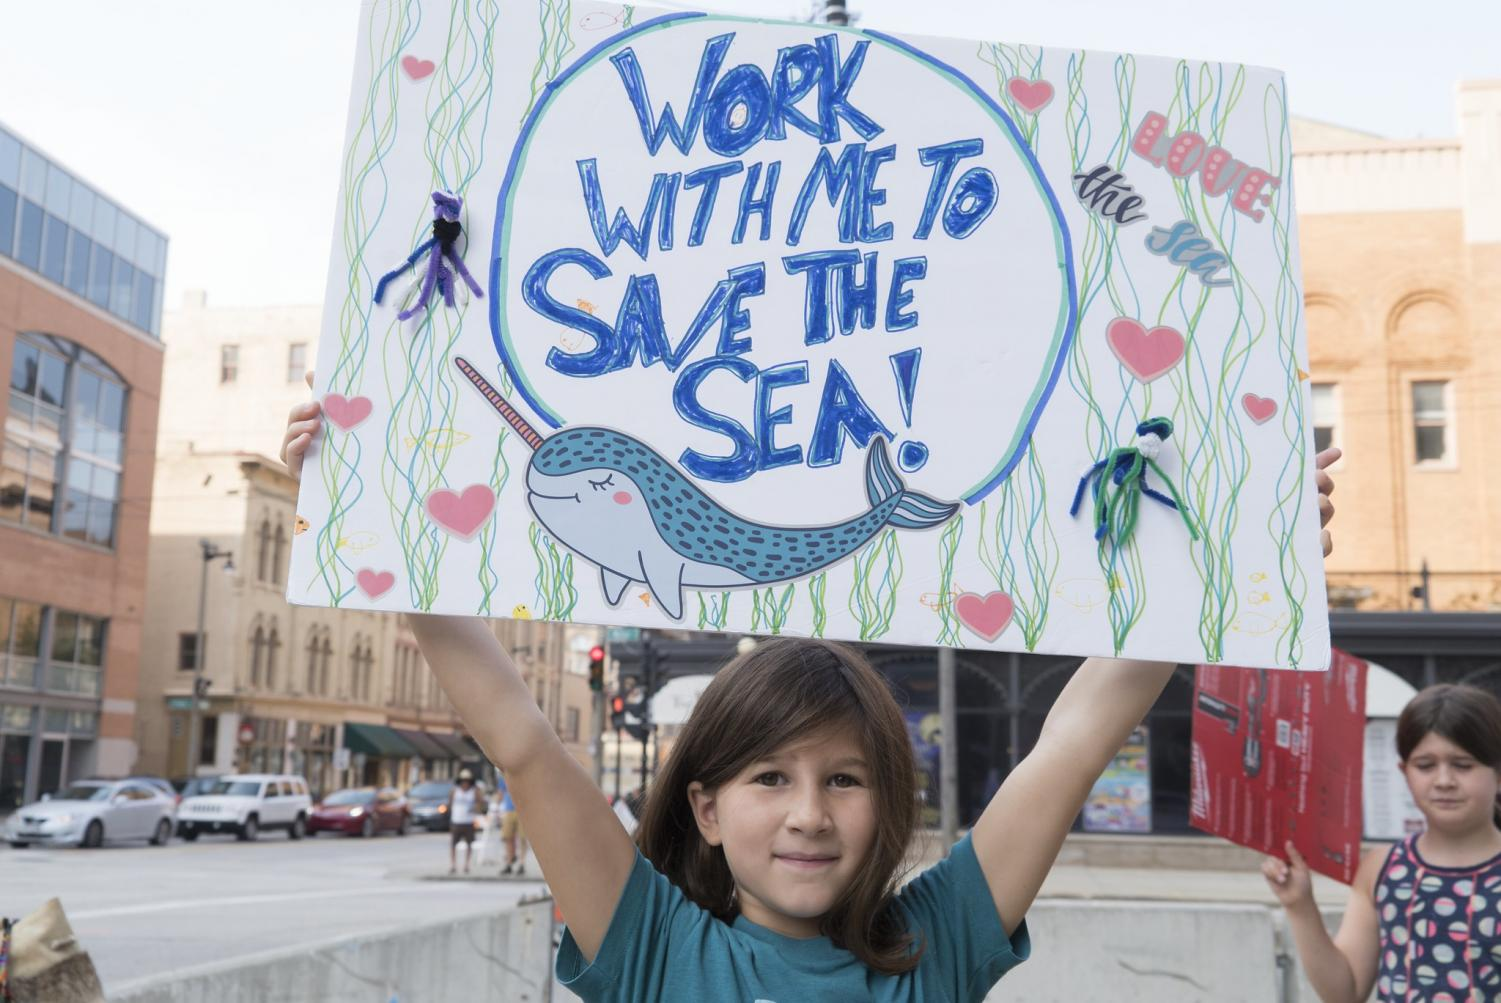 Milwaukee citizens gathered Sept. 20 to demand climate action from city, state and national governments. Photo via flickr.